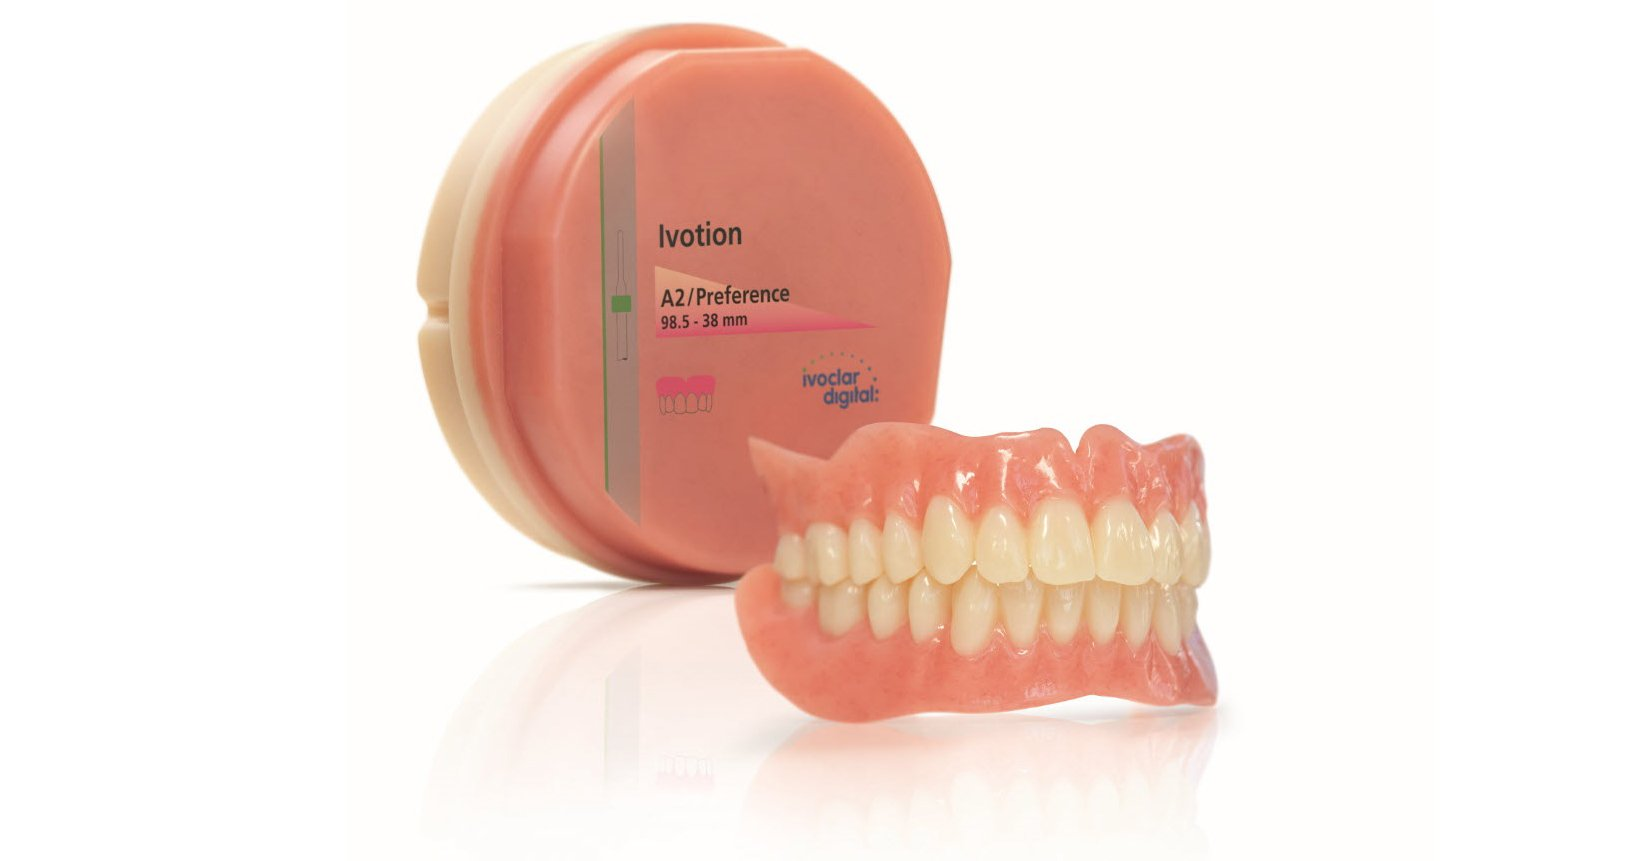 Soluzioni Digital Denture al centro dell'interesse al Chicago Midwinter Meeting 2020